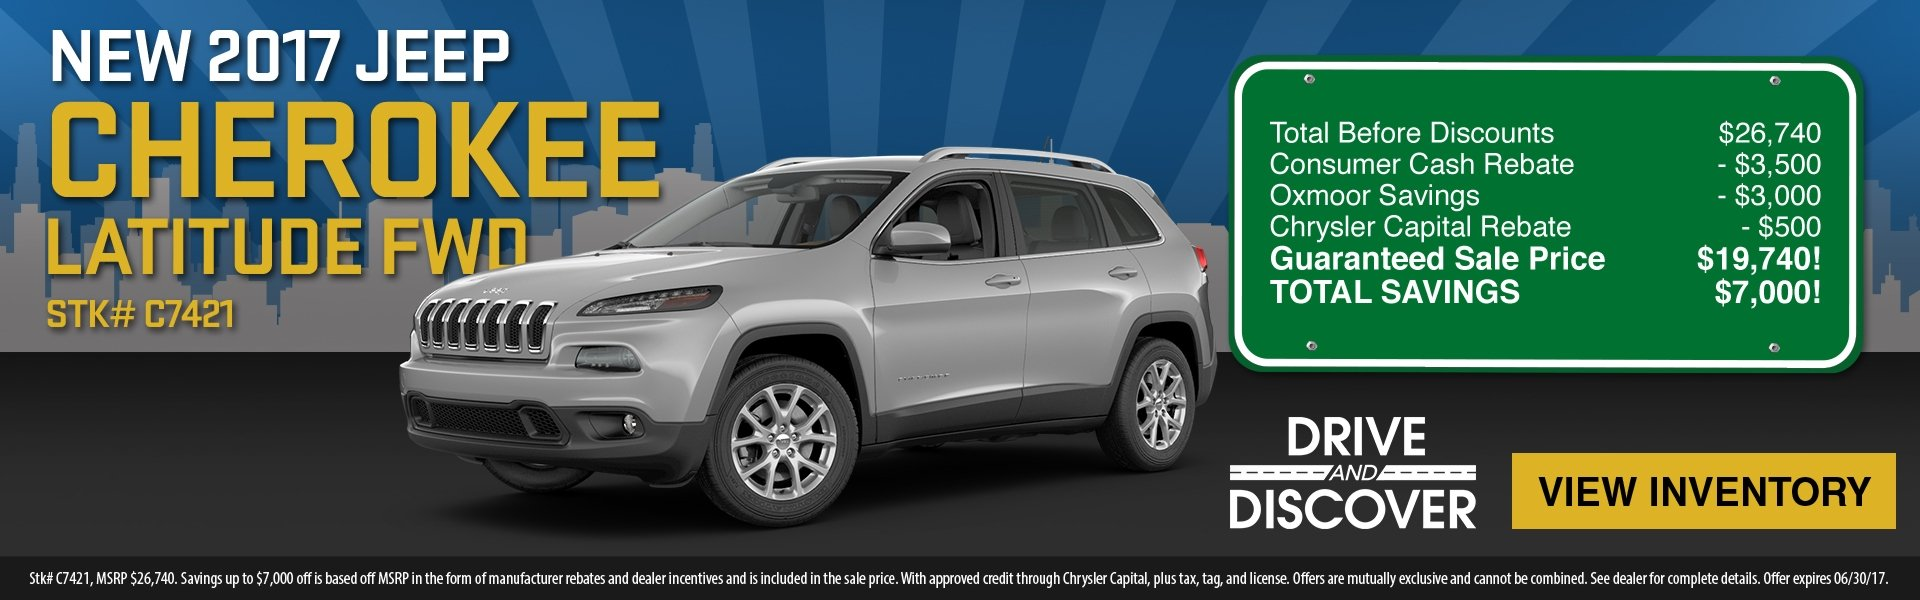 2017 Cherokee, up to $7,000 in savings! See dealer for details